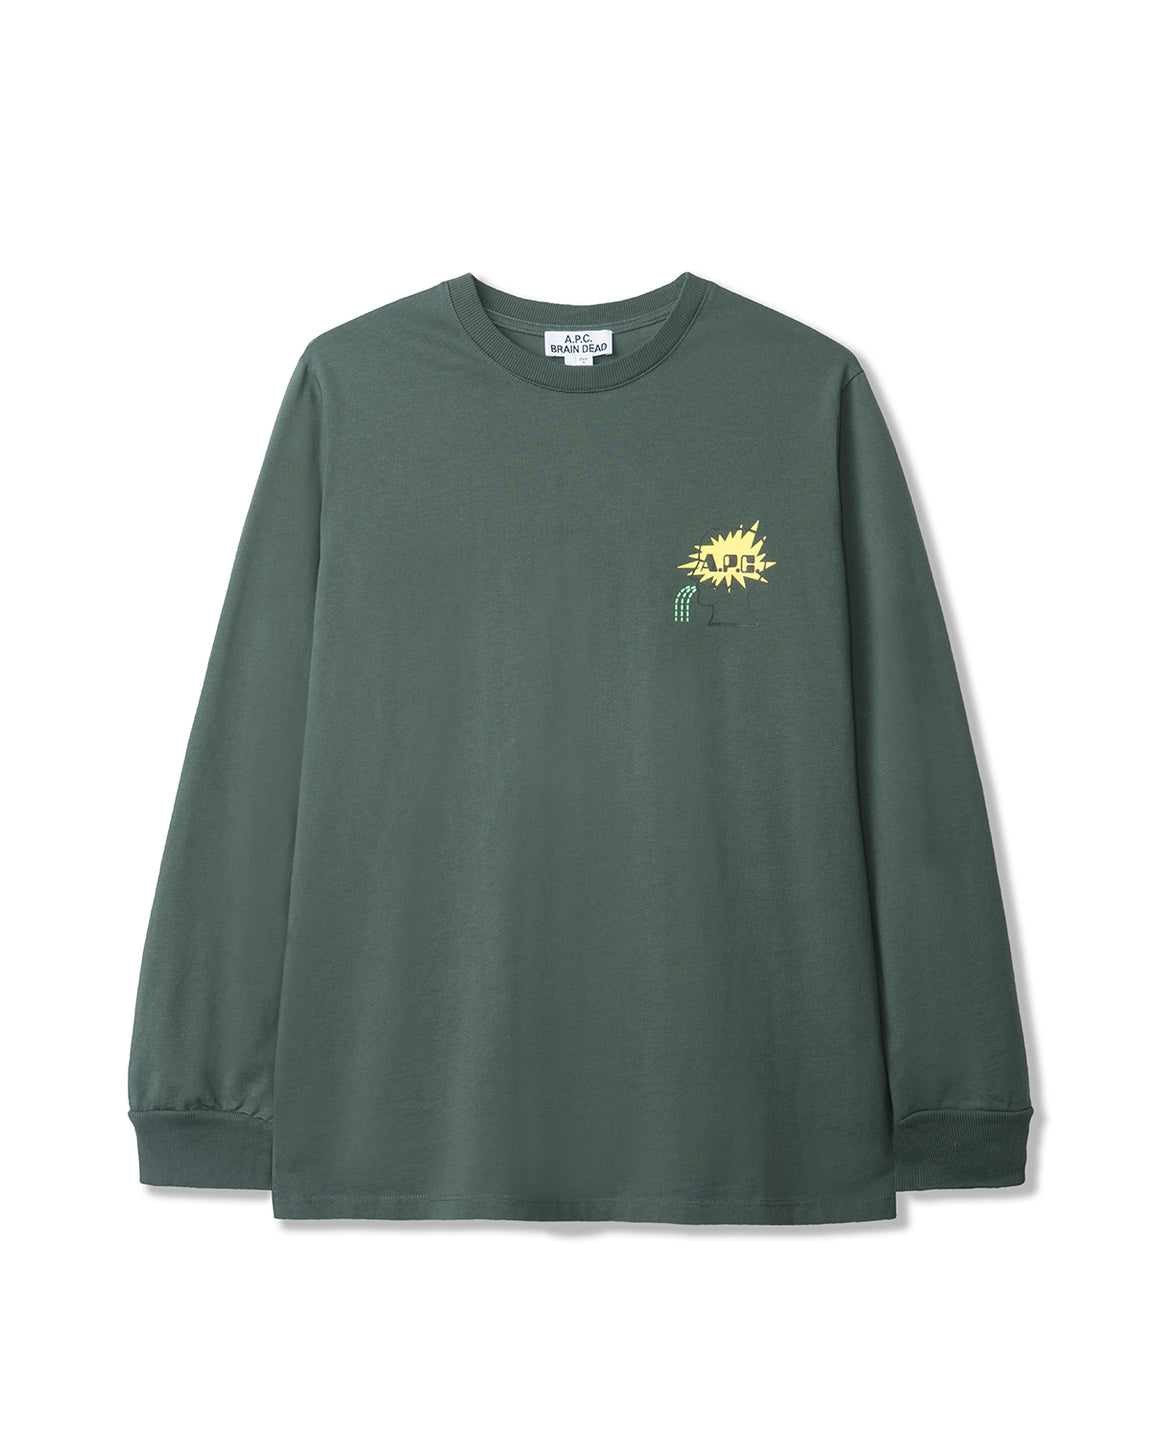 Men's Molly Long Sleeve Jersey T-Shirt A.P.C. x Brain Dead - Grey/Green